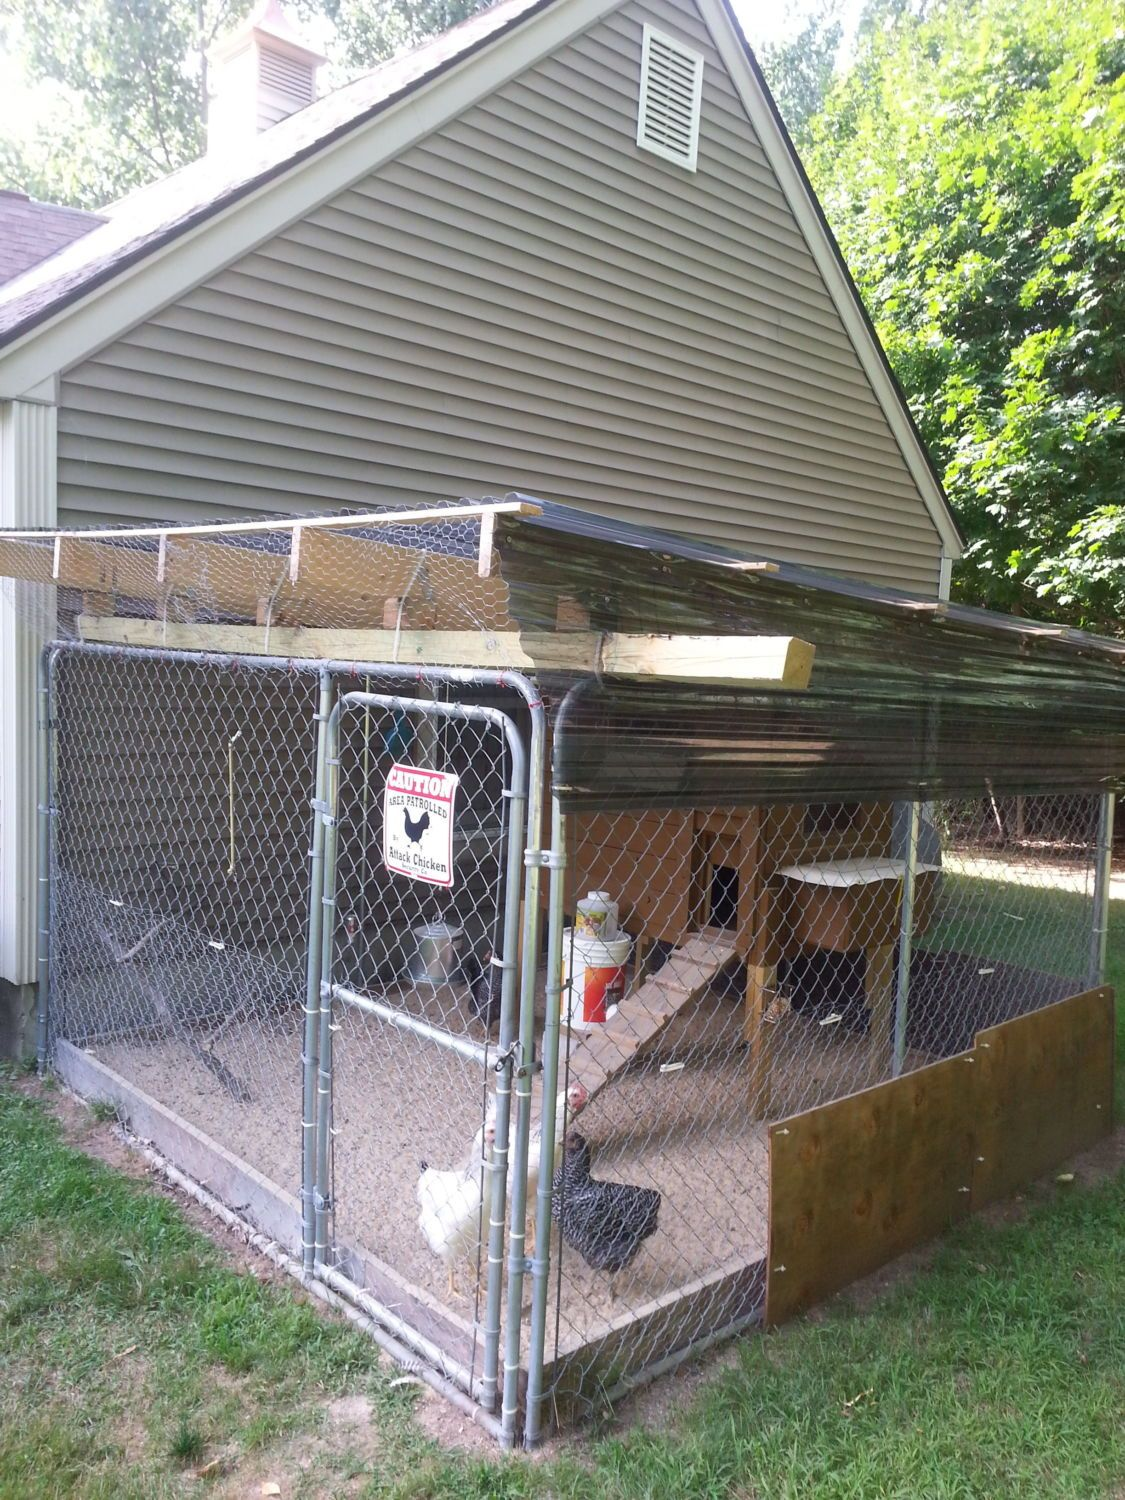 Show Me Your Dog Kennel Coops Backyard Chickens